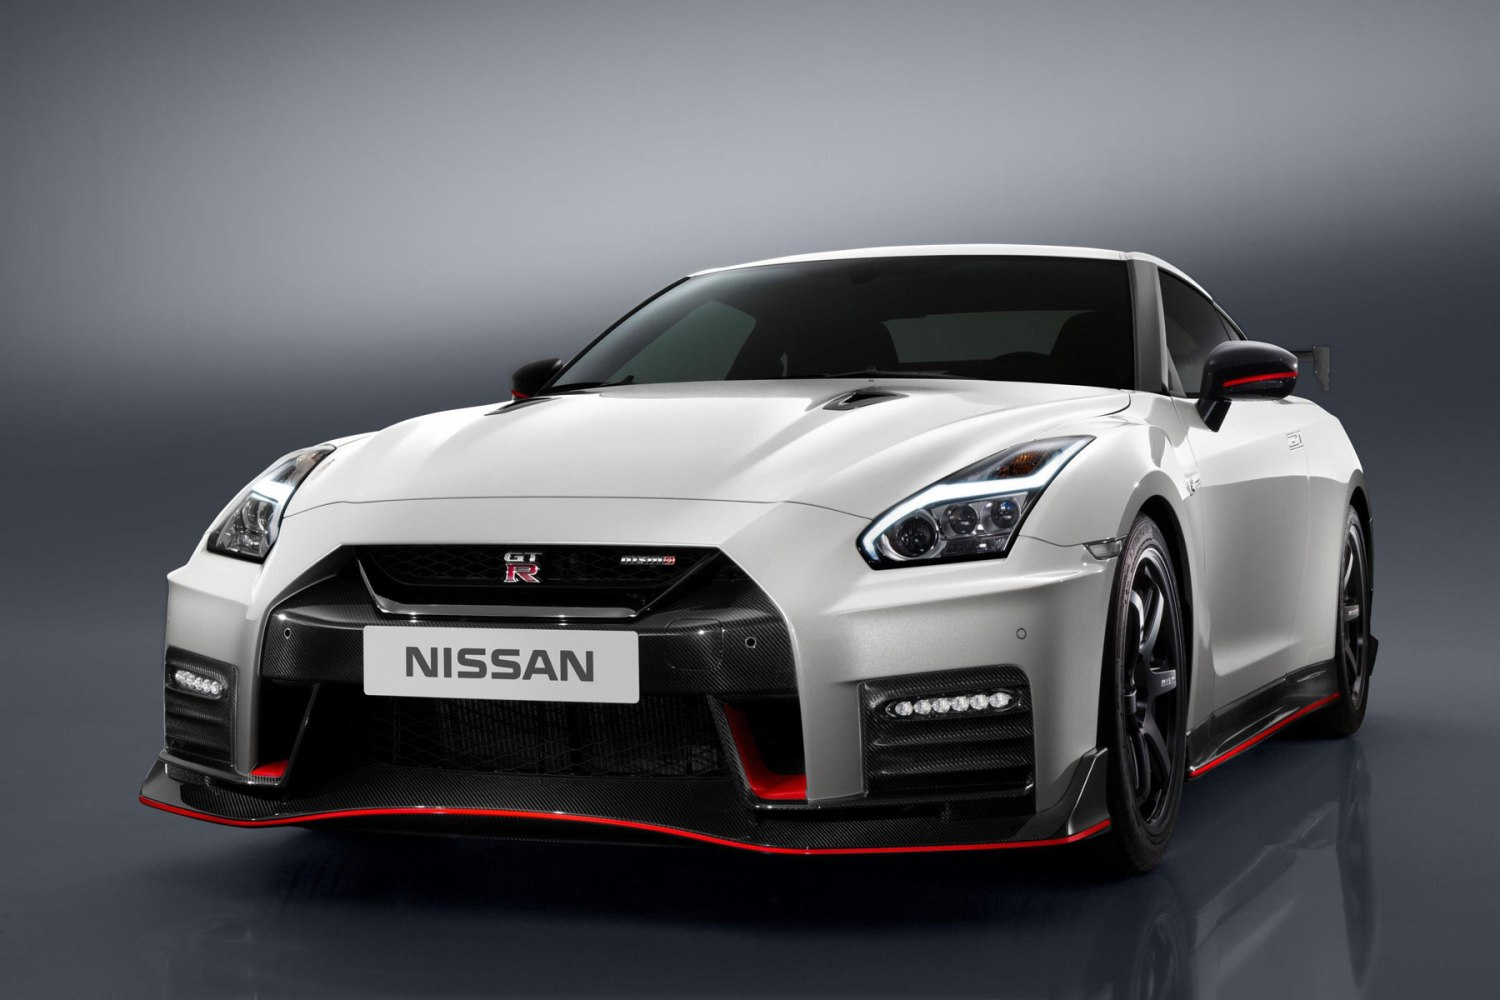 Nissan GT-R Nismo – 2.7 seconds